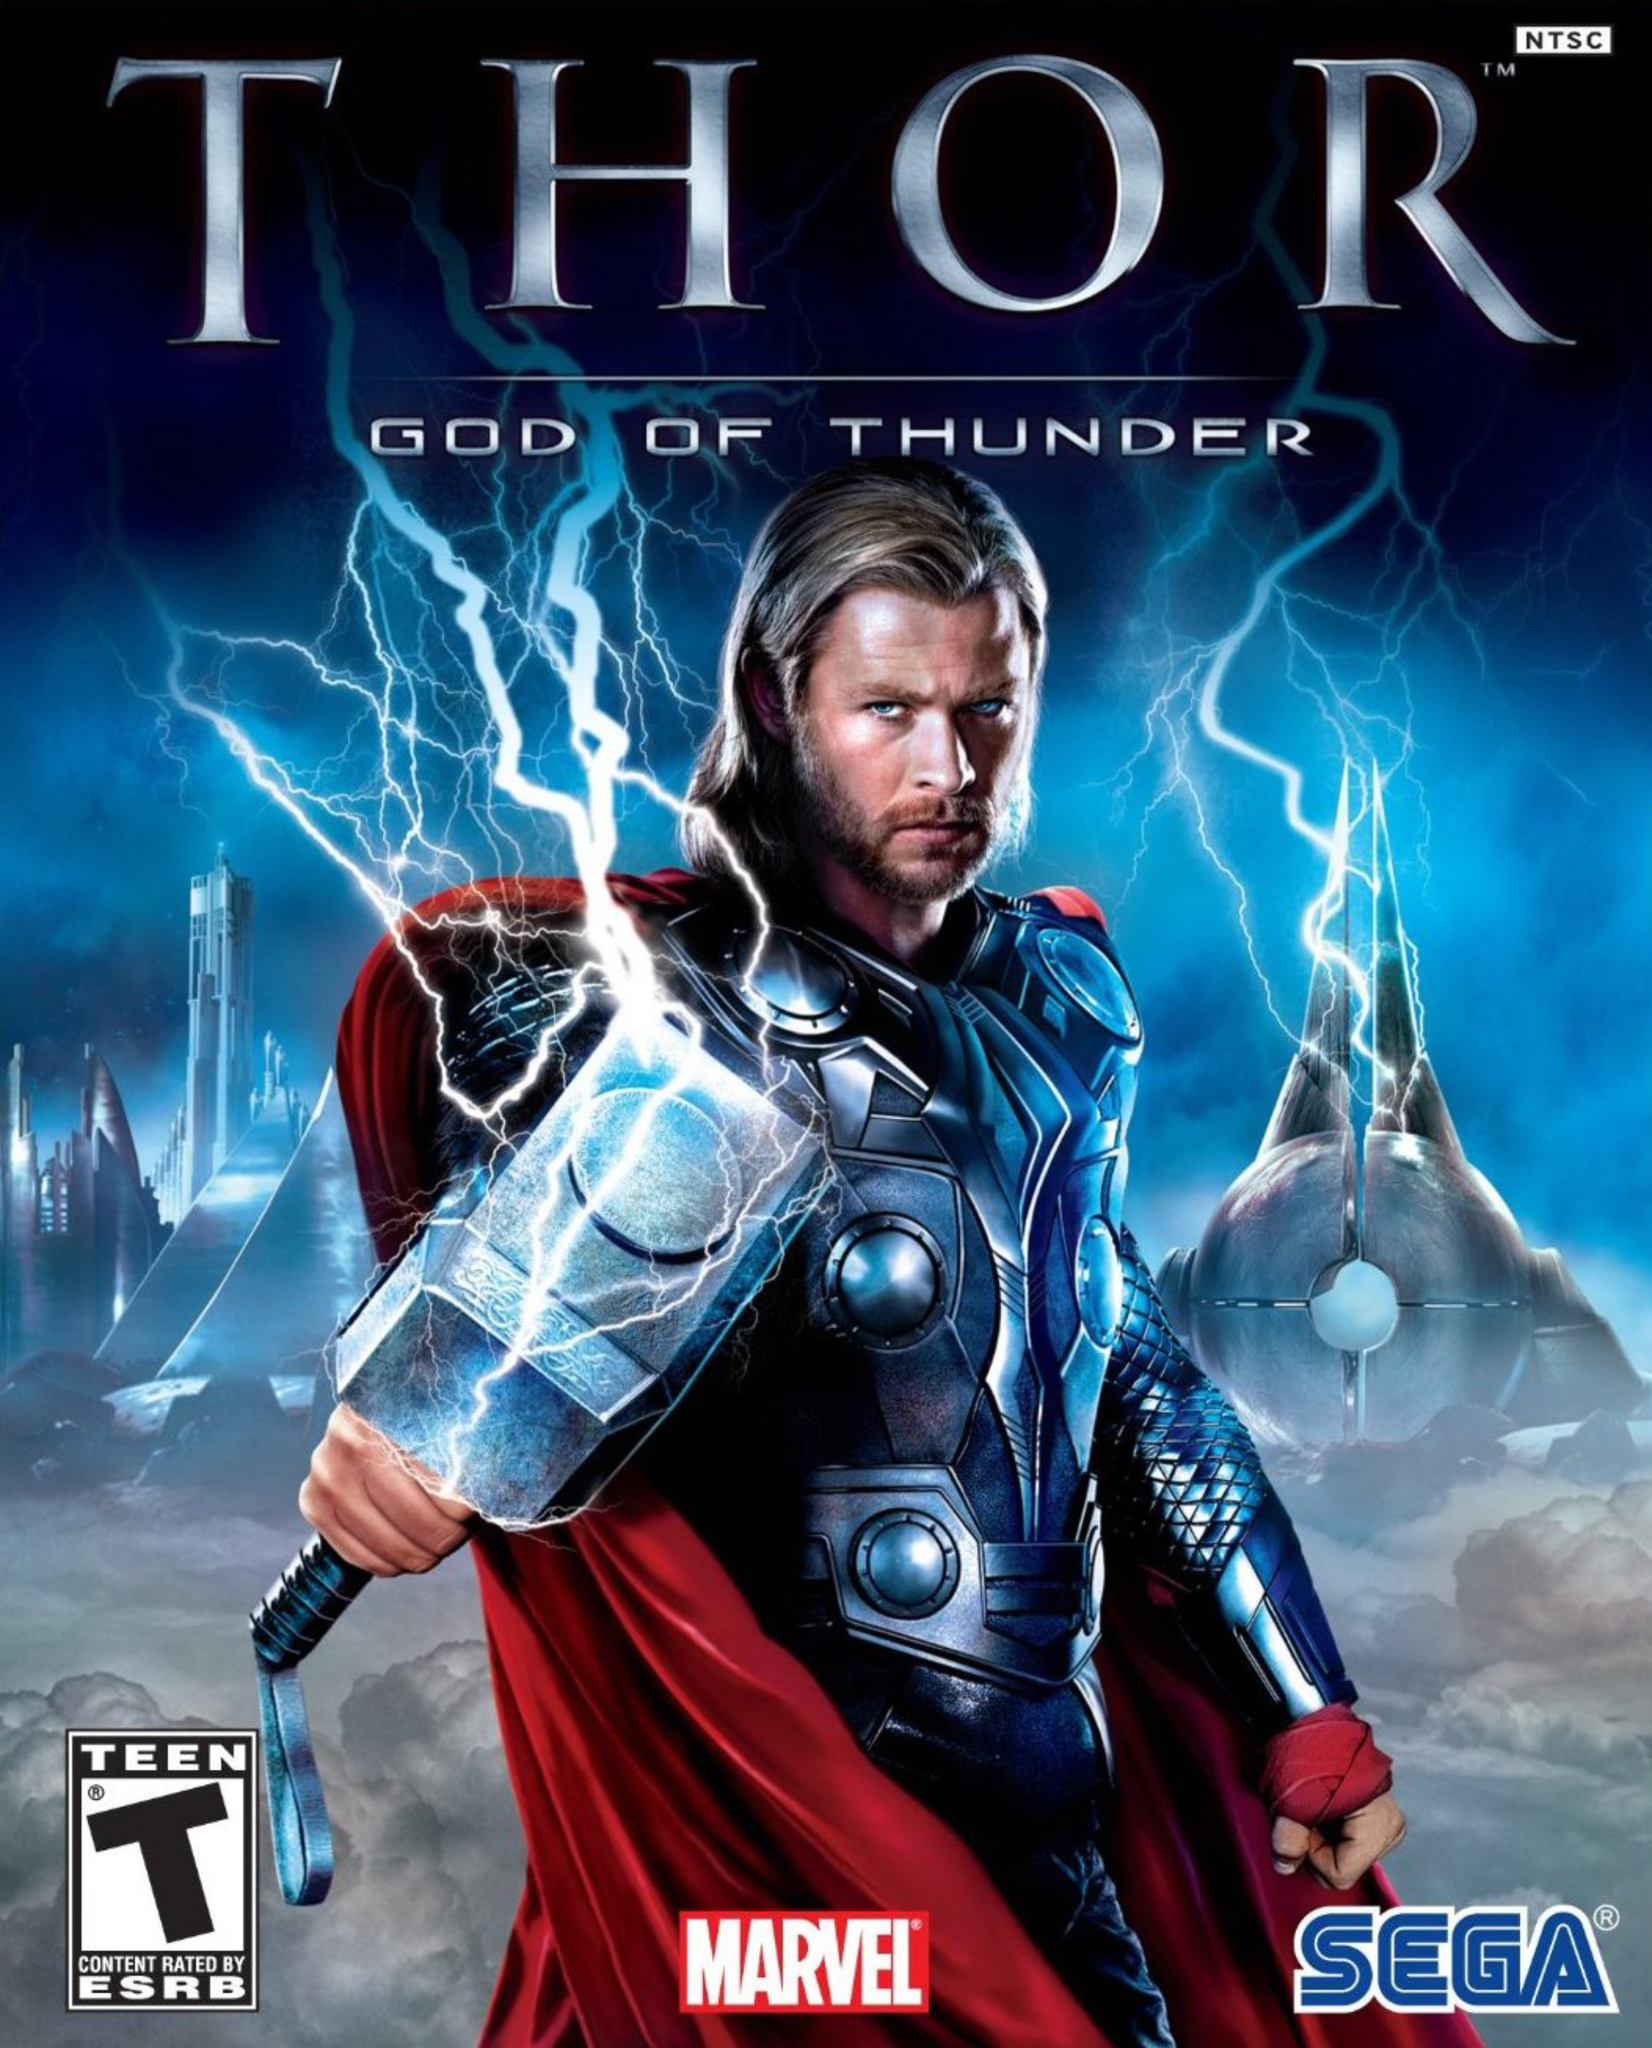 Thor: God of Thunder (Video Game 2011) - IMDb